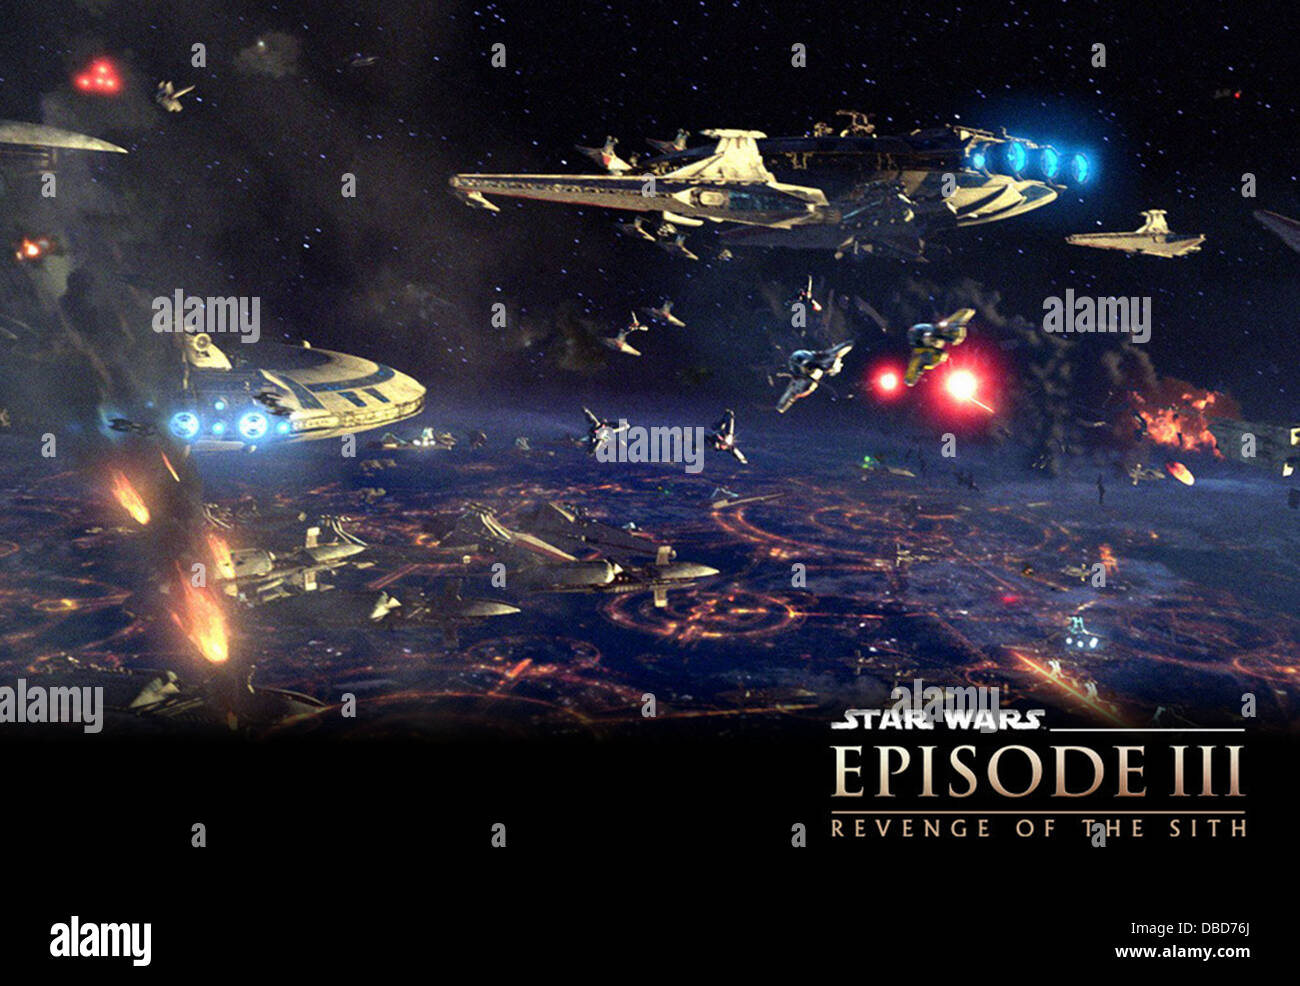 Star Wars Episode Iii Revenge Of The Sith Poster 2005 George Stock Photo Alamy